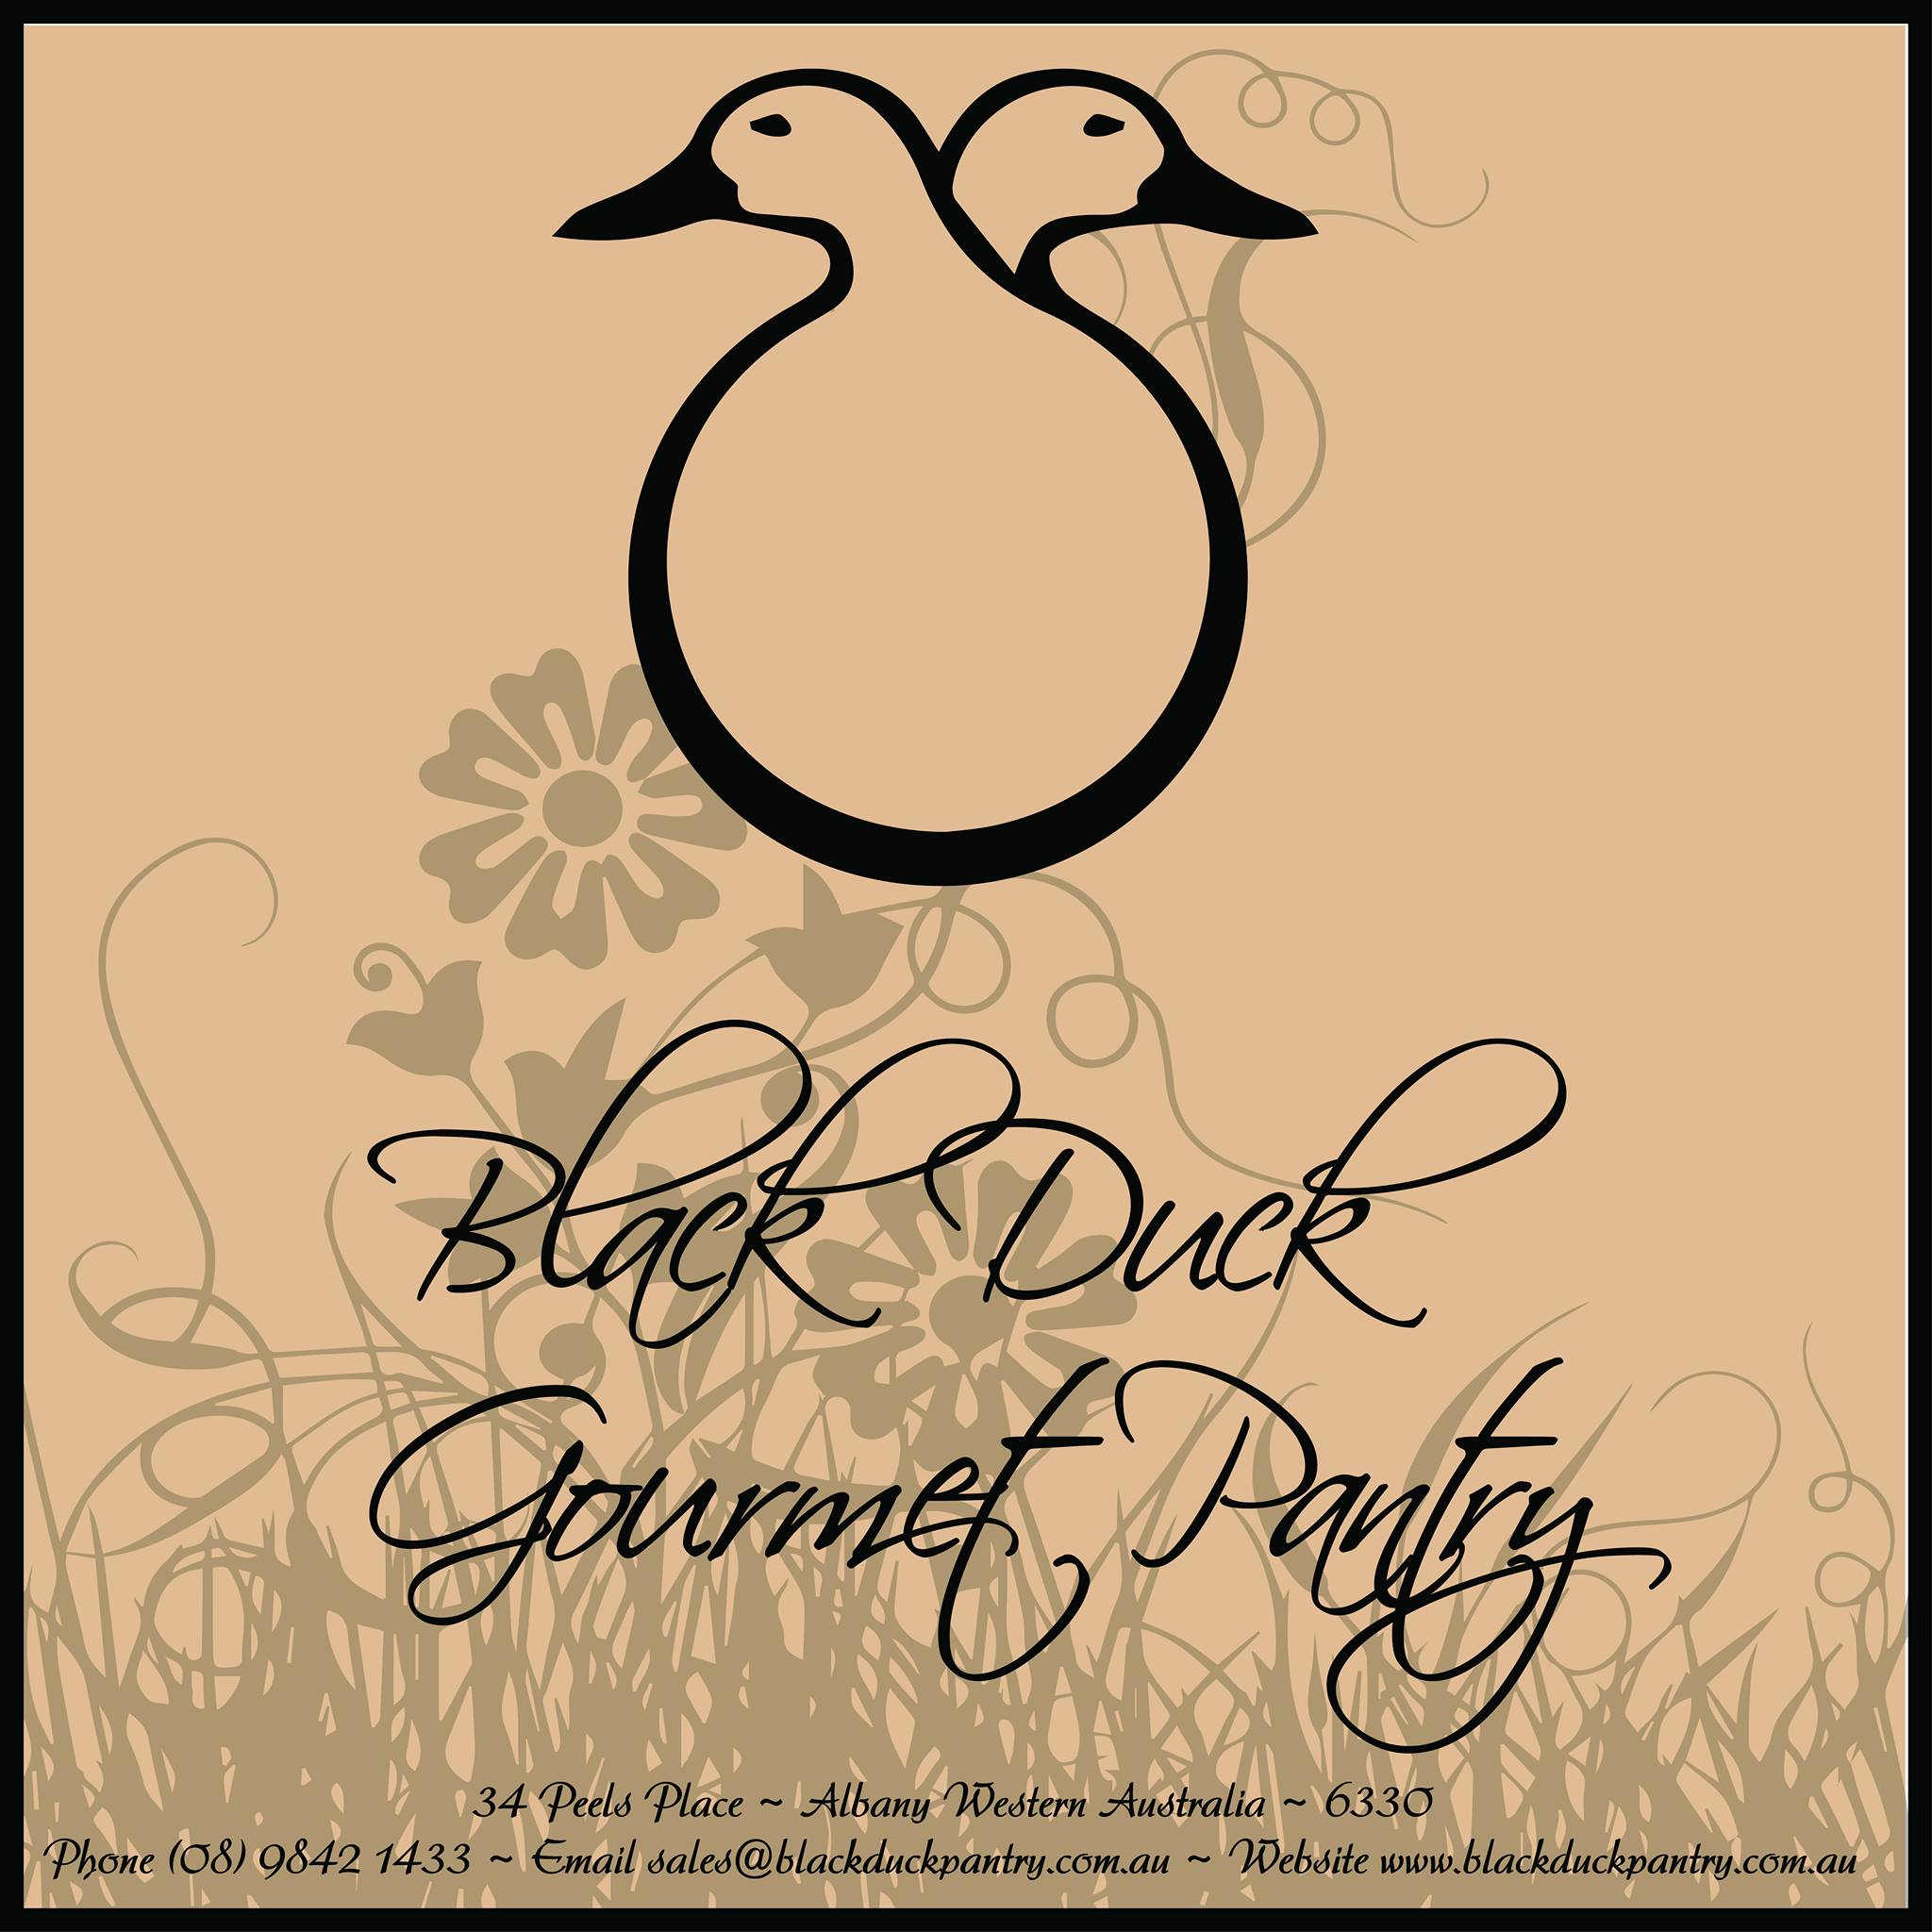 Black Duck Gourmet Pantry